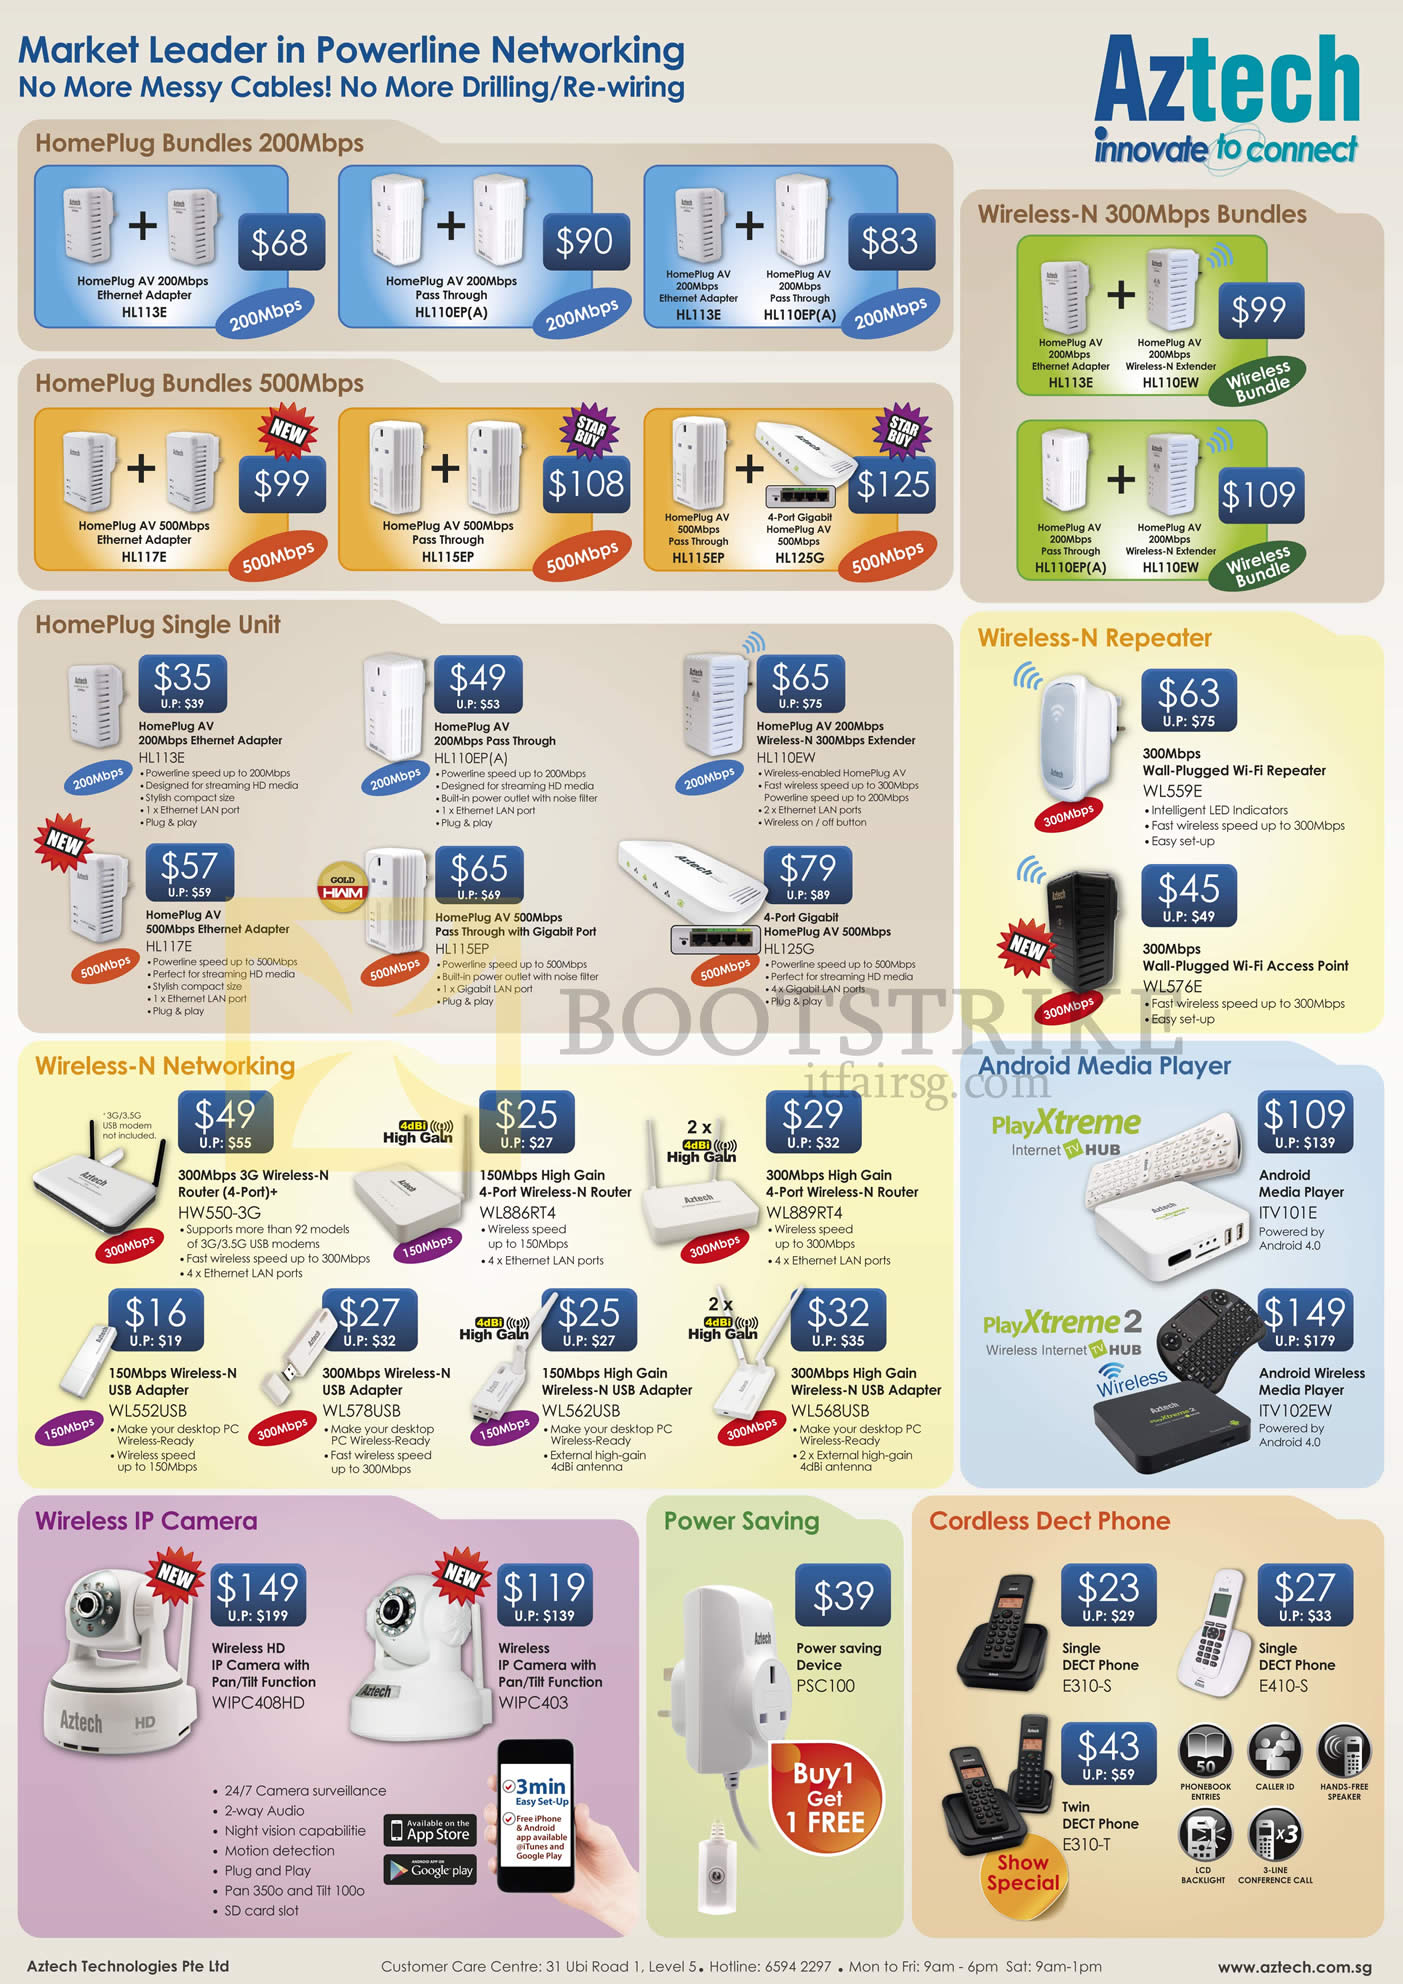 PC SHOW 2013 price list image brochure of Aztech Networking HomePlug Bundles, Wireless Routers, Repeater, Android Media Player PlayXtreme 2, USB Adapter, IPCam, Power Saving, Dect Phone